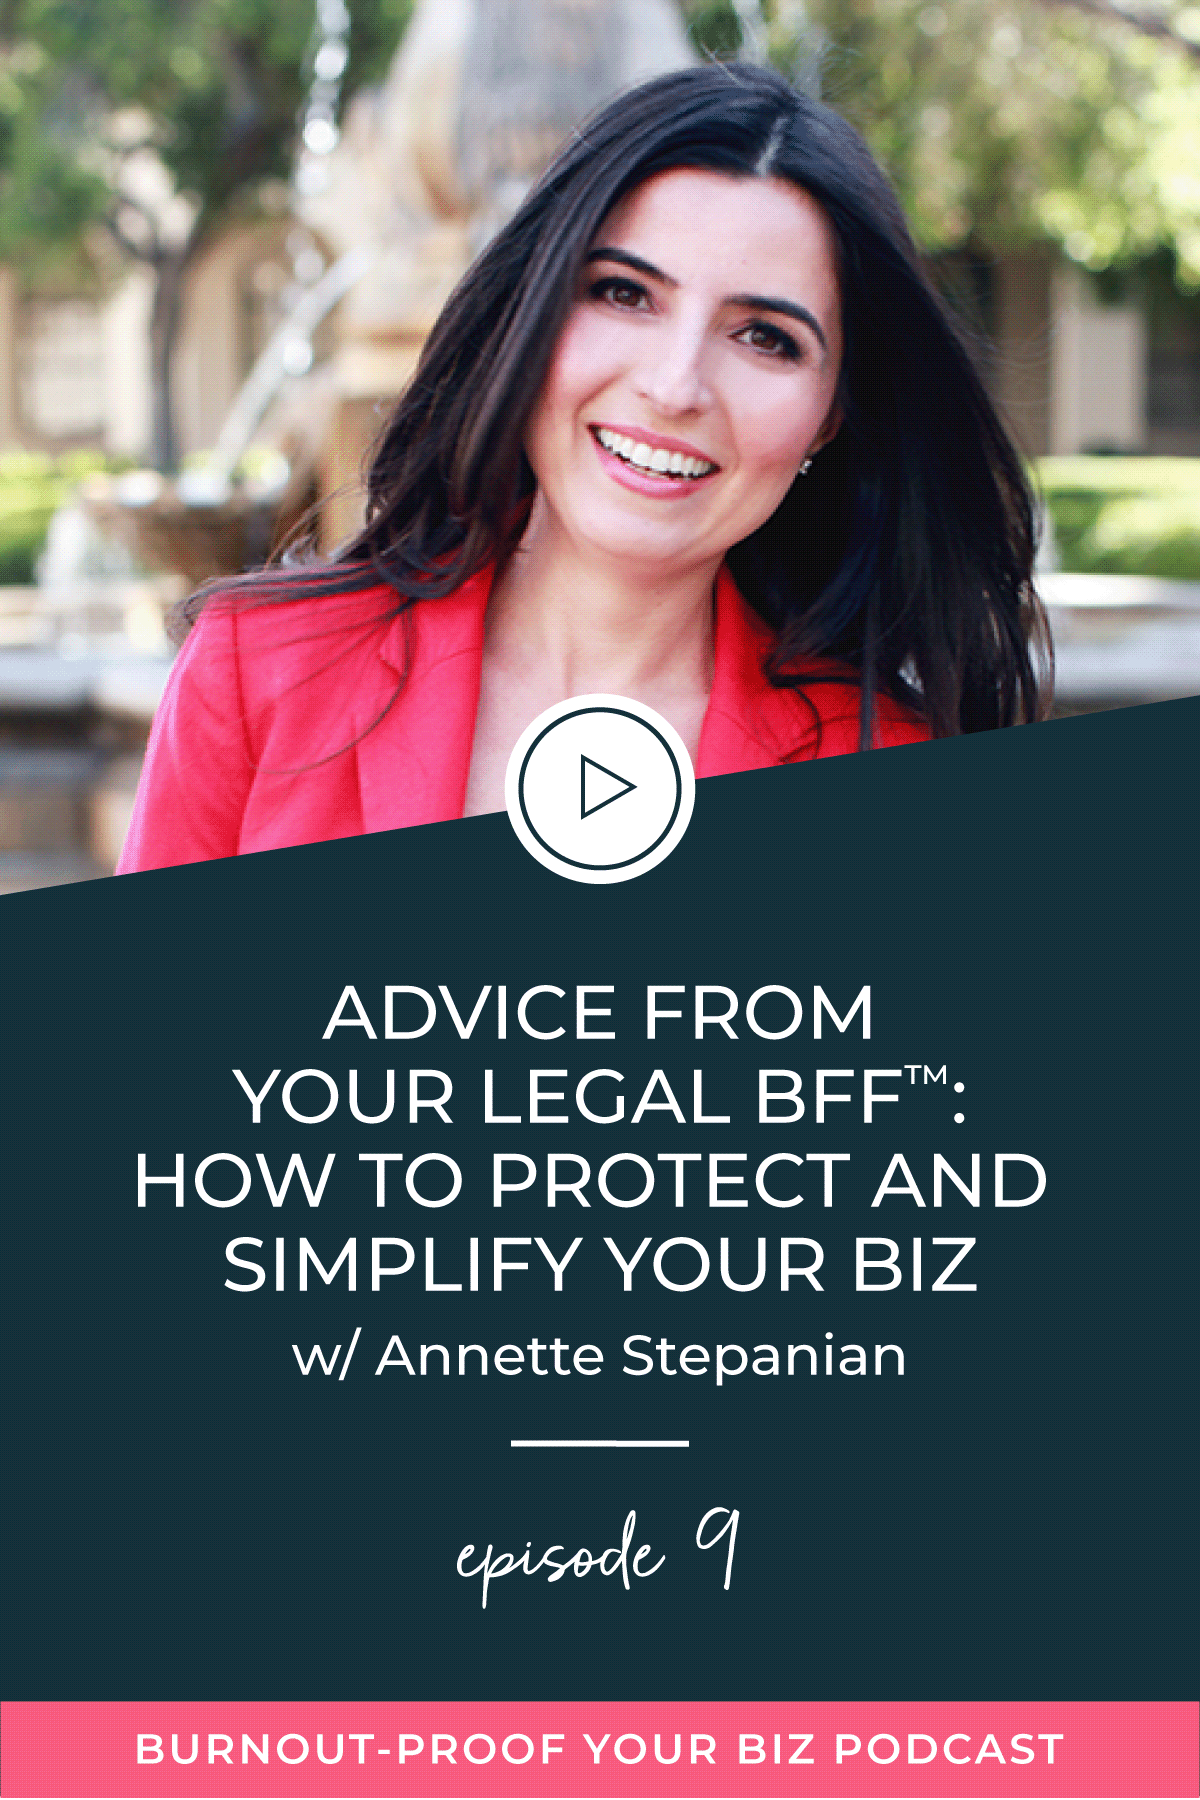 Burnout-Proof Your Biz Podcast with Chelsea B Foster   Episode 009 - Advice From Your Legal BFF™: How to Protect and Simplify Your Biz w/ Annette Stepanian   Learn how to run your biz and live your dream life on your own terms without the fear of burnout.